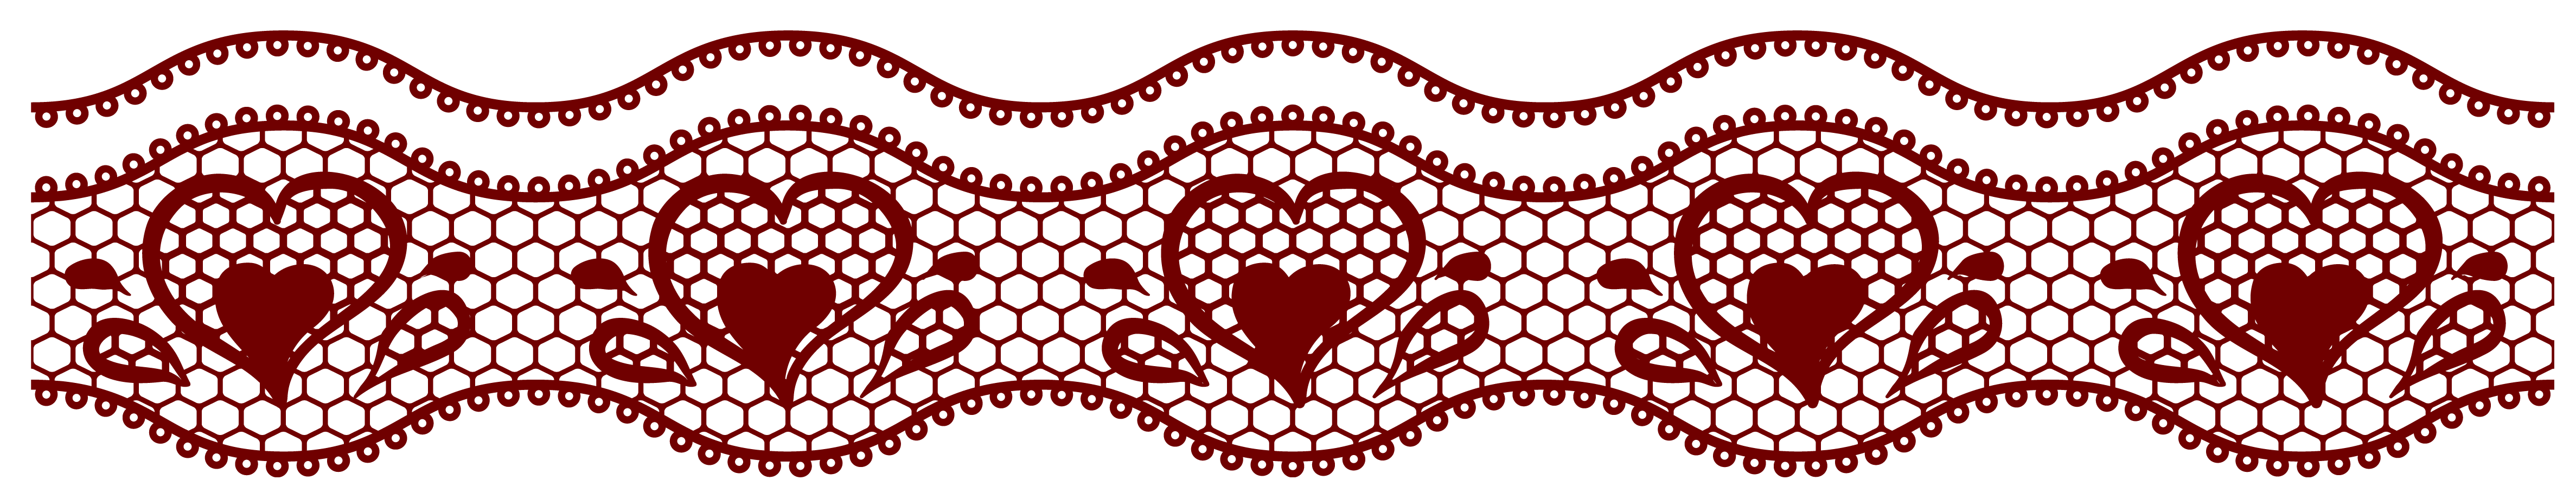 Clipart rose lace. Transparent with hearts decoration